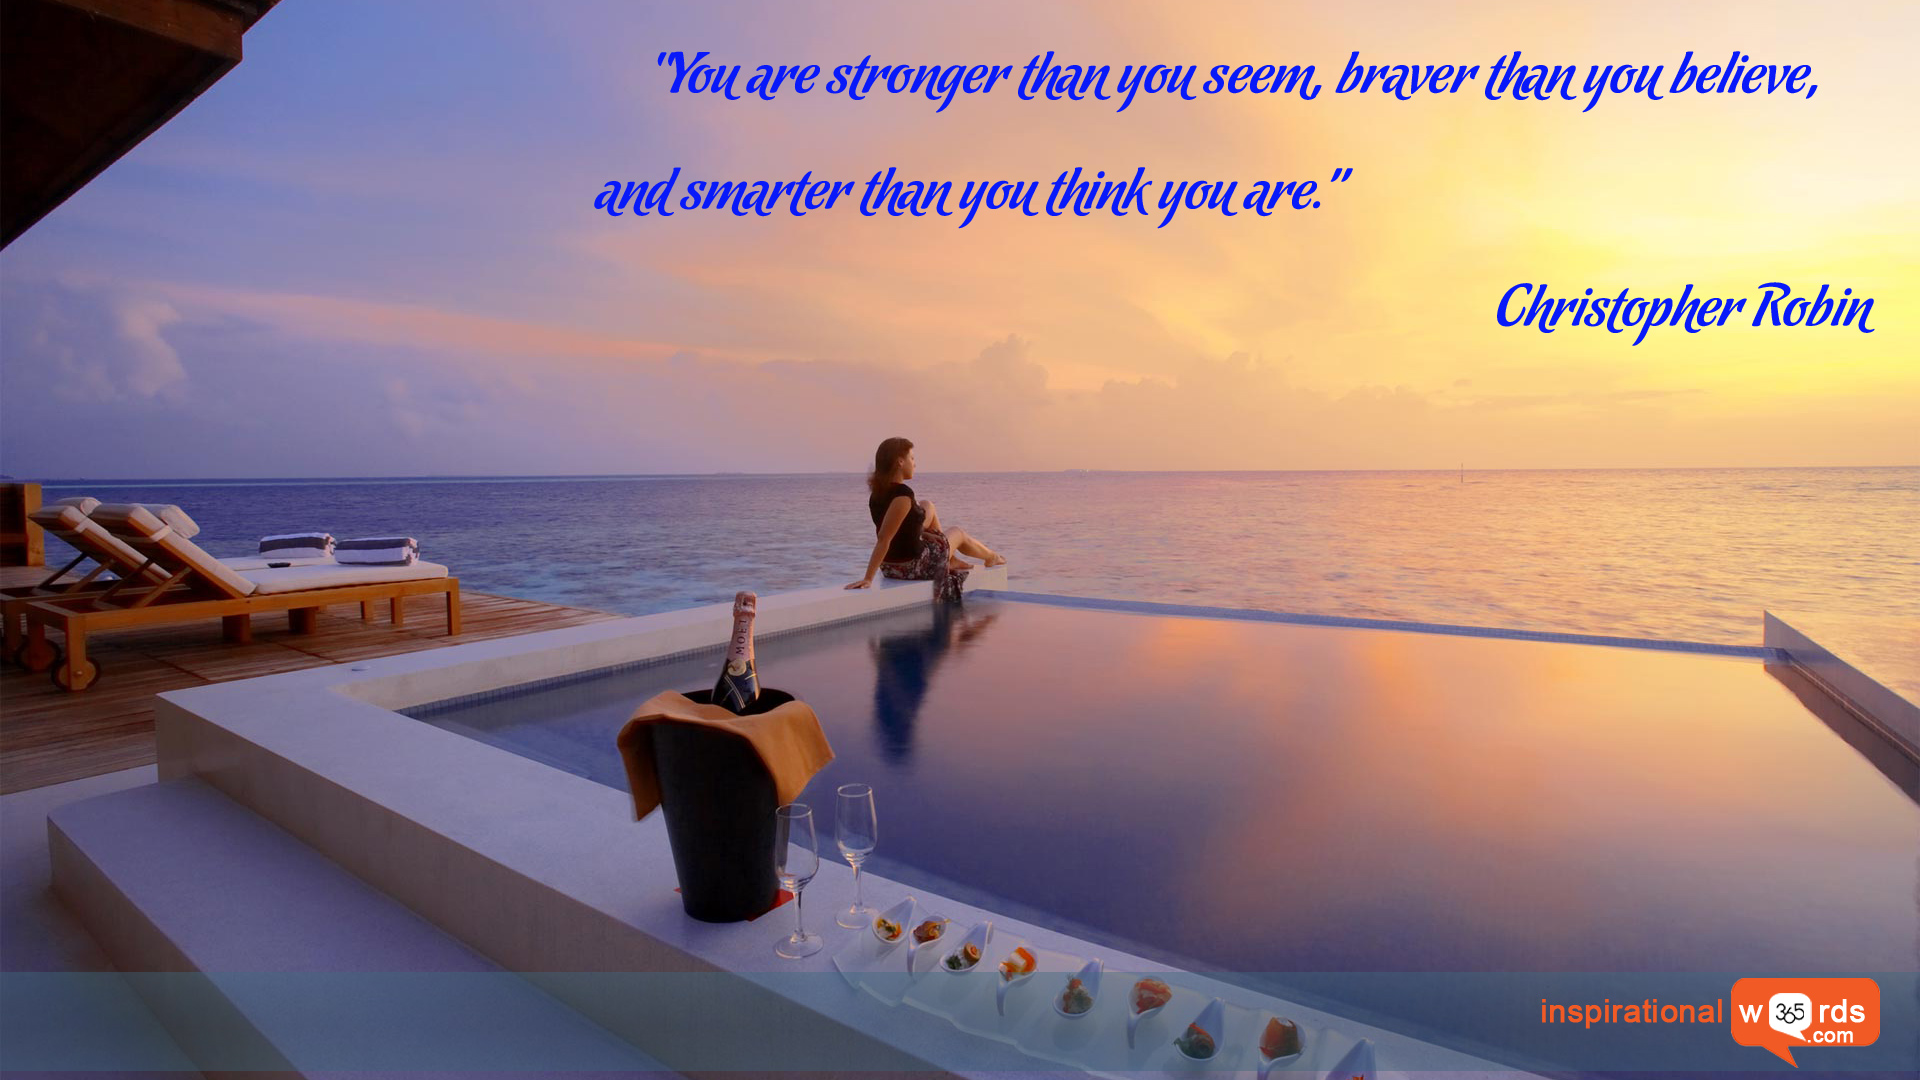 Inspirational Wallpaper Quote by Christopher Robin